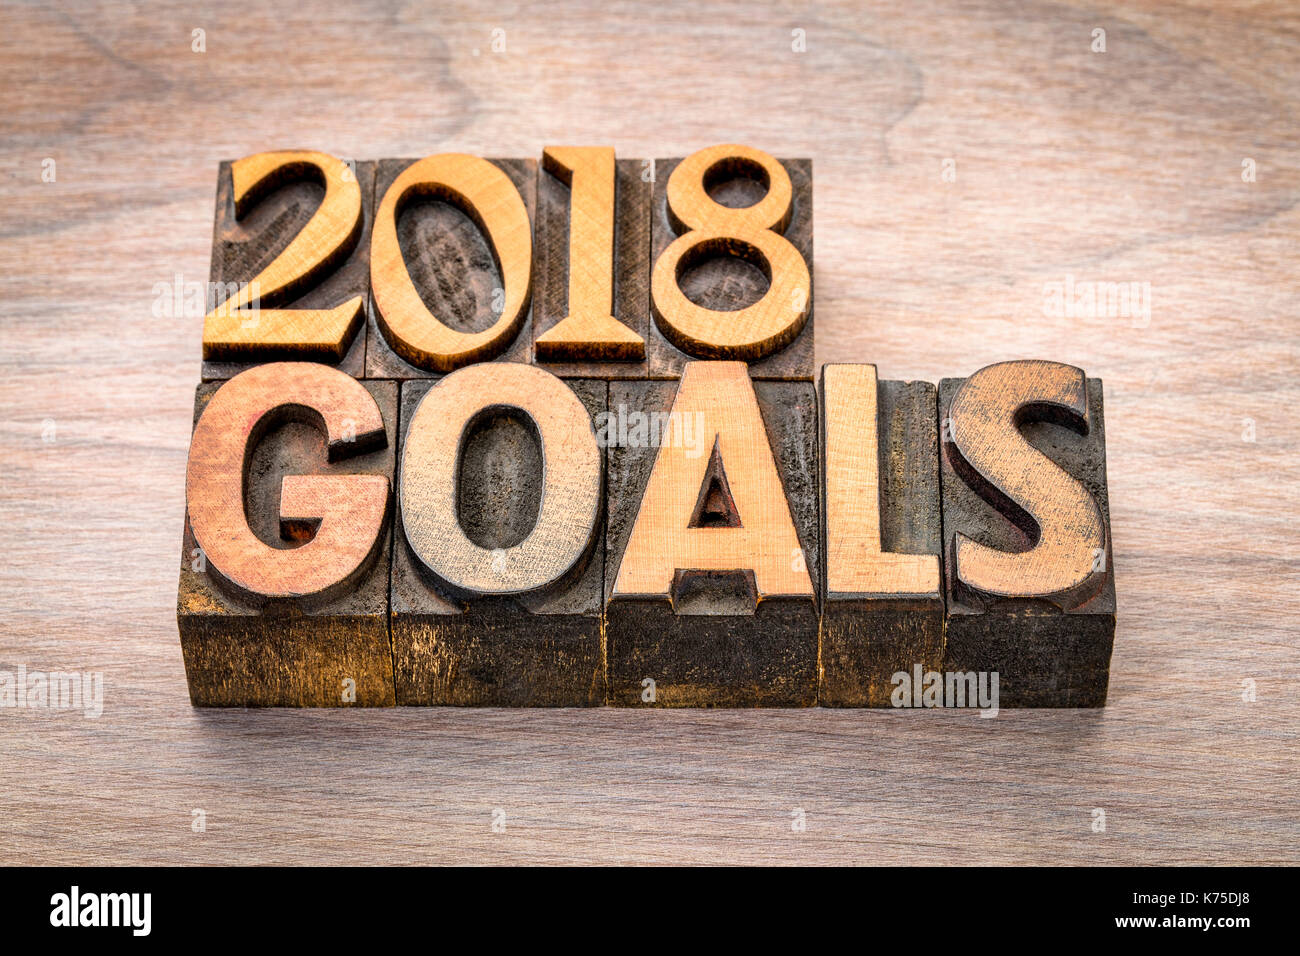 2018 goals banner new year resolution concept text in vintage letterpress wood type printing blocks against grained wood